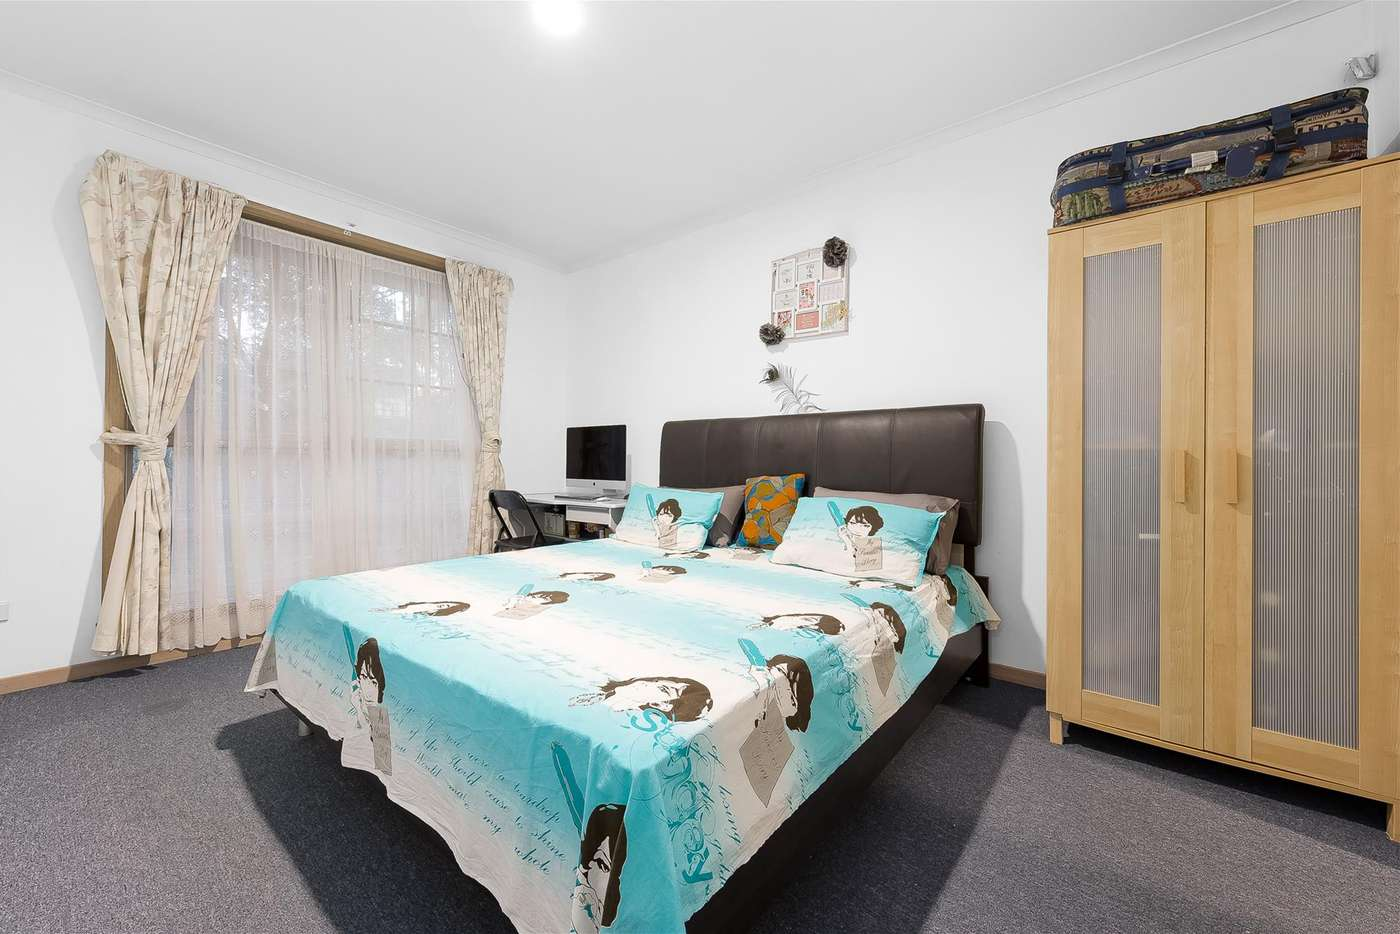 Sixth view of Homely house listing, 9 Dunai Walk, Delahey VIC 3037